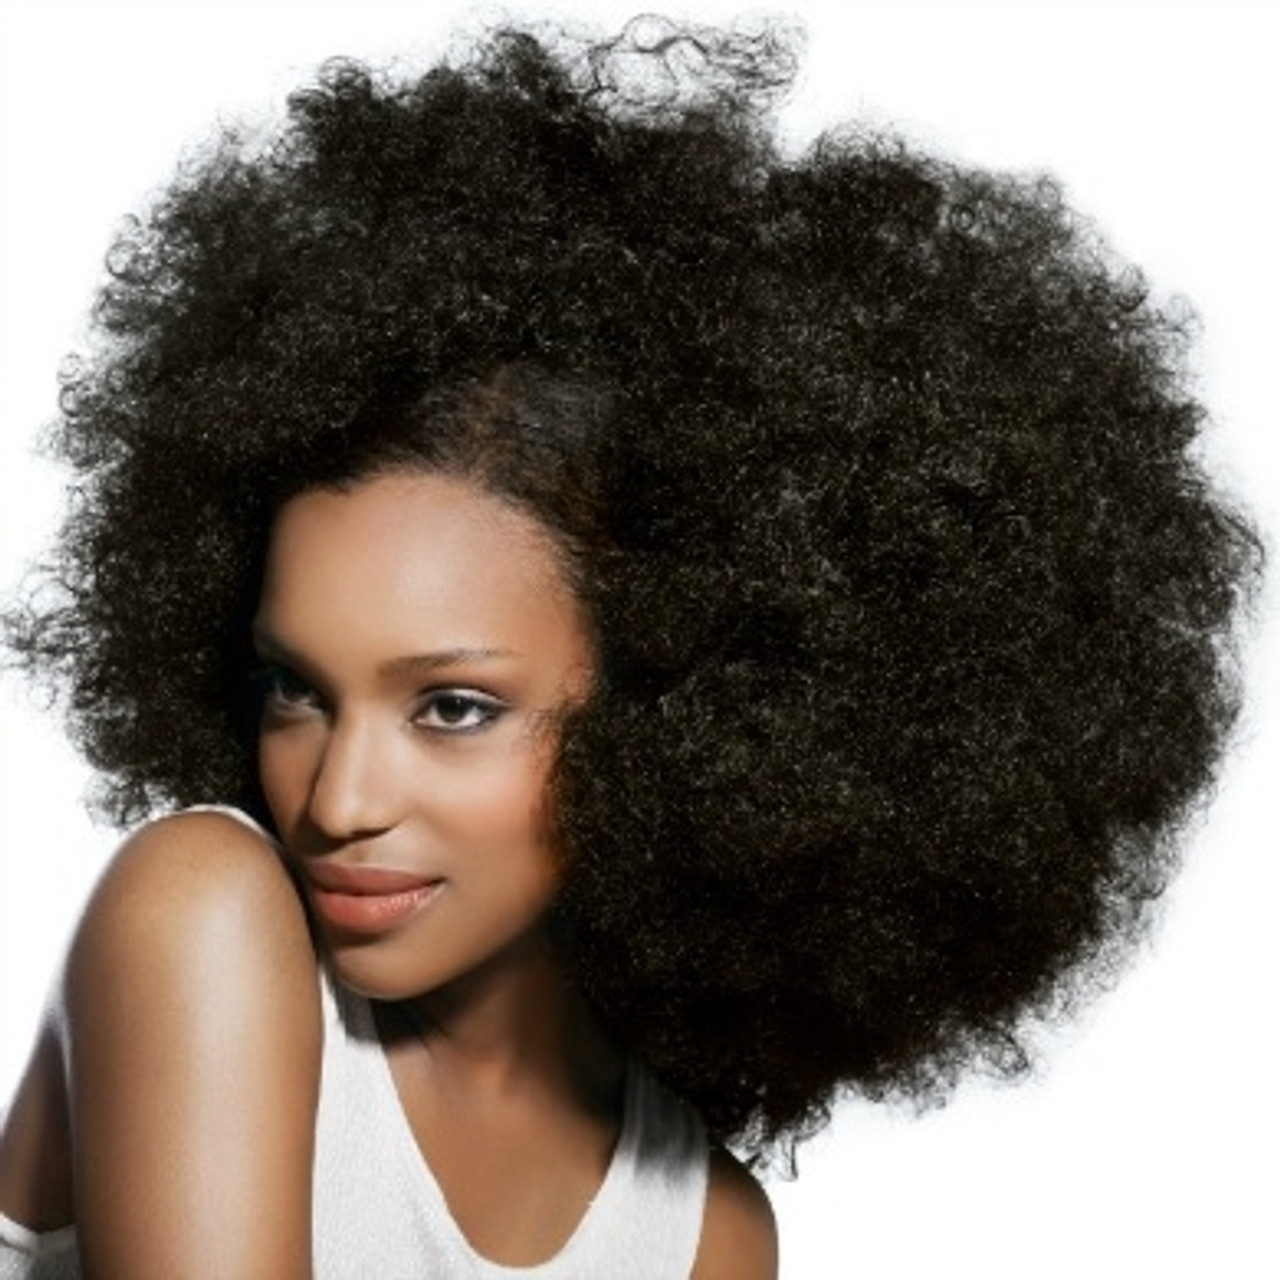 Where To Buy All Natural Beauty Hair Products Online For African